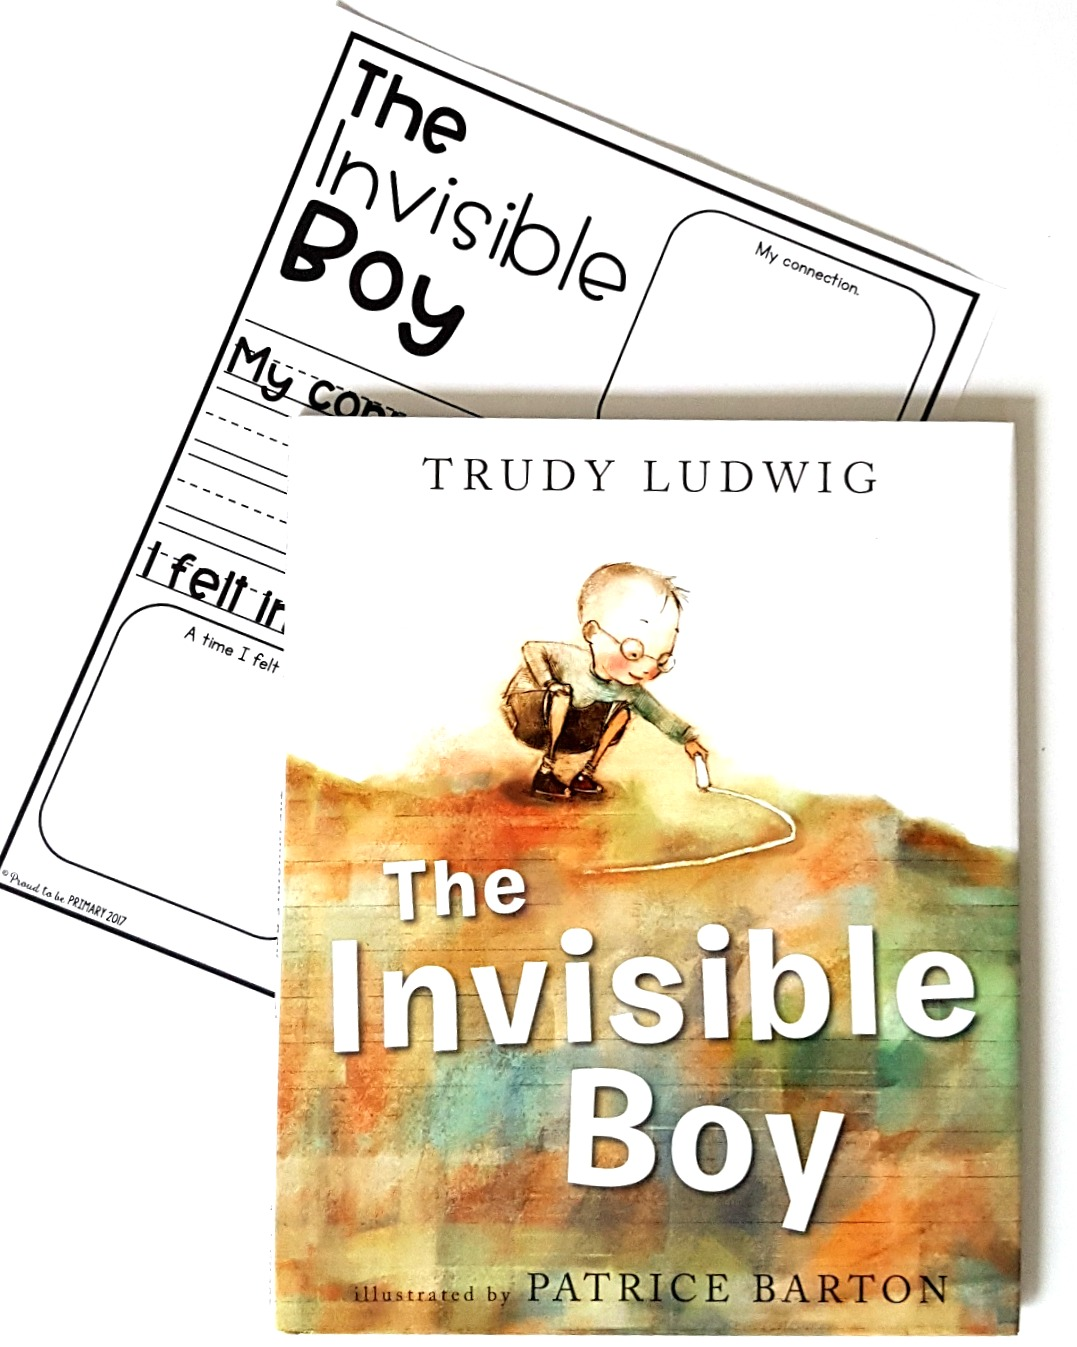 teaching empathy - the invisible boy